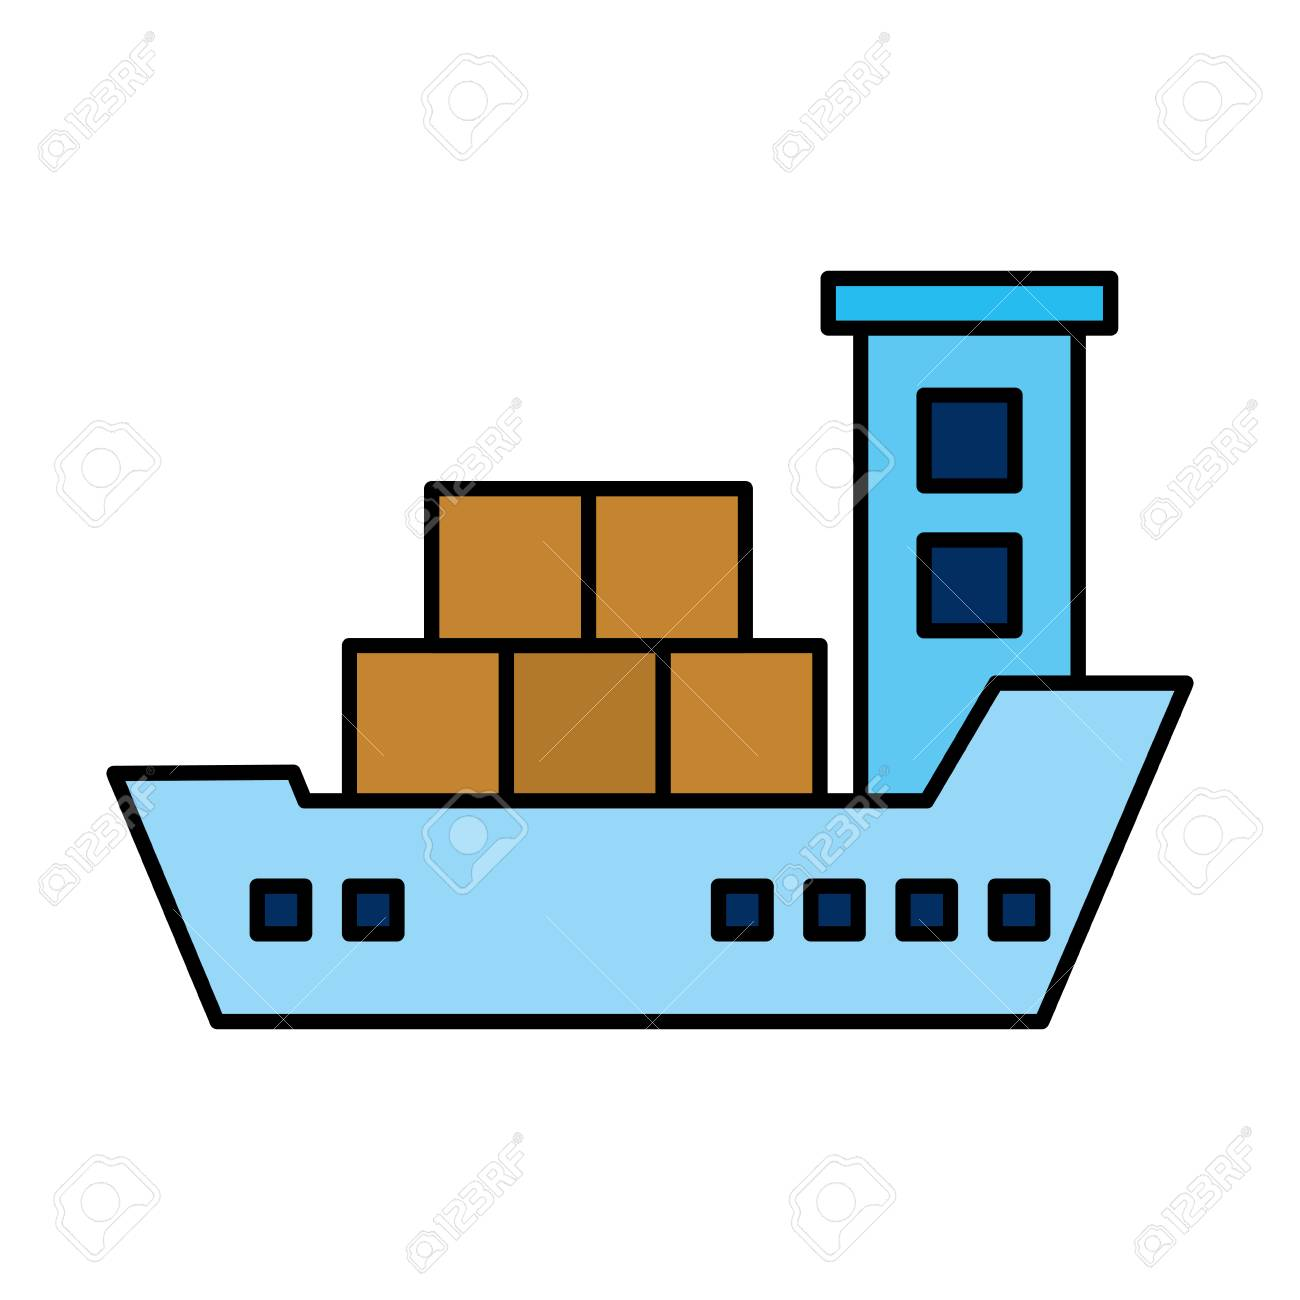 hight resolution of cargo ship isolated icon vector illustration design stock vector 109992148